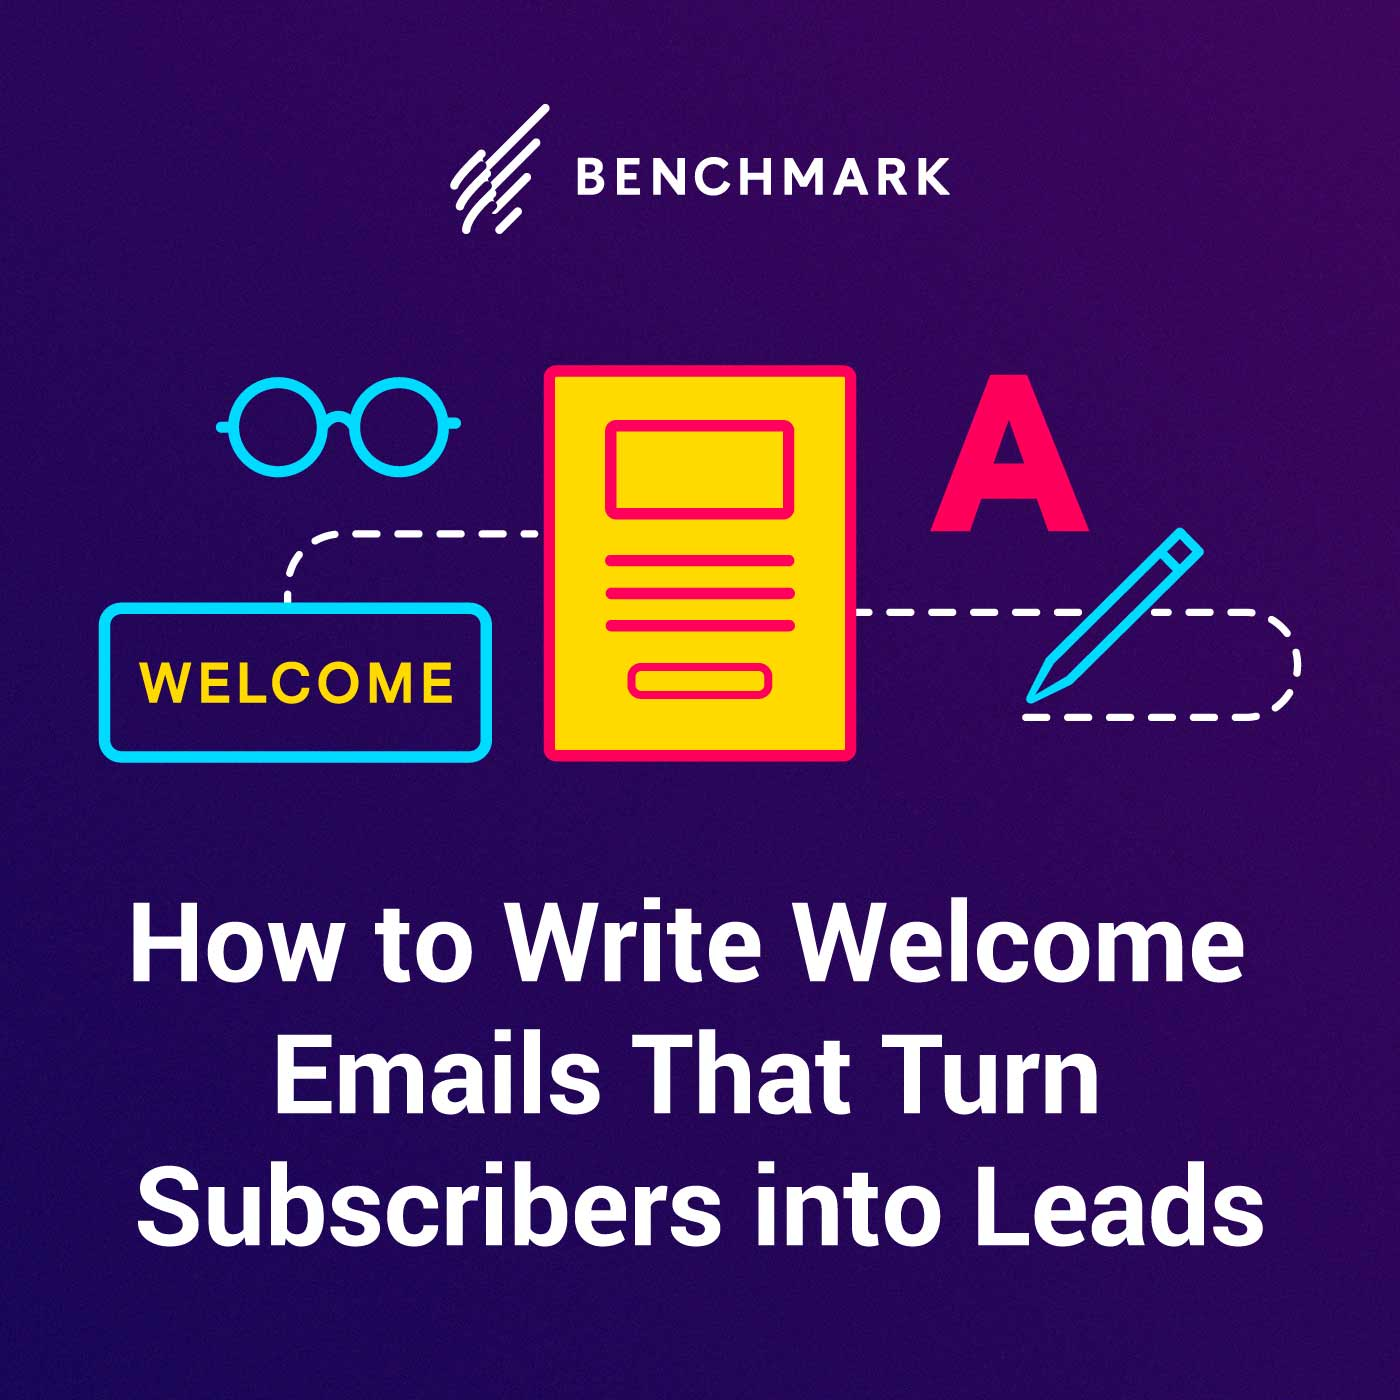 How to Write Welcome Emails That Turn Subscribers into Leads